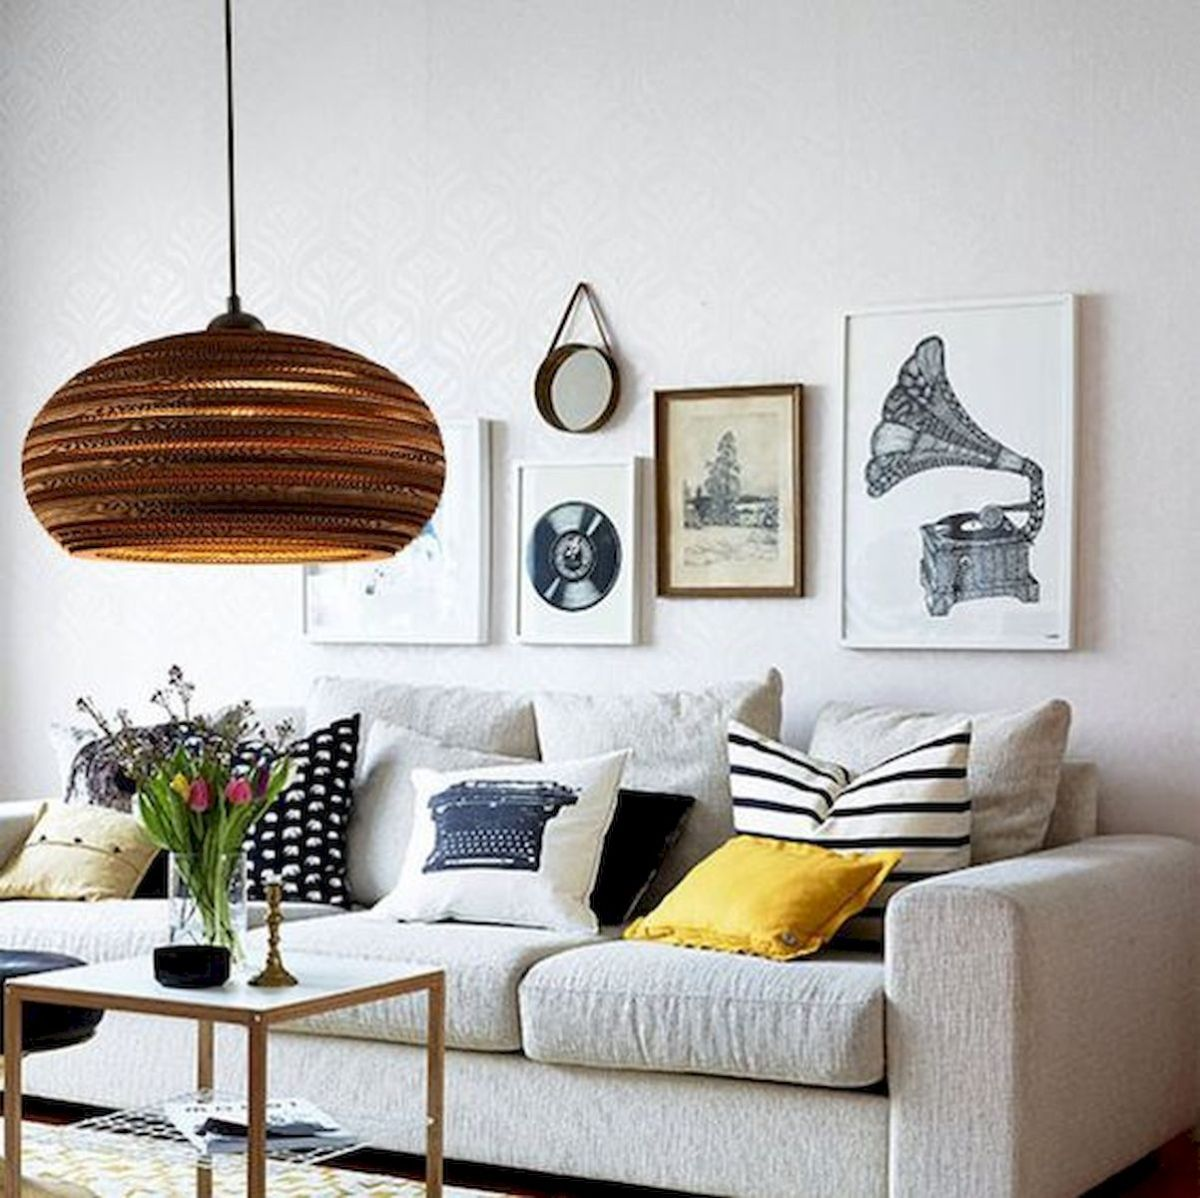 73 Eclectic Living Room Decor Ideas (23)